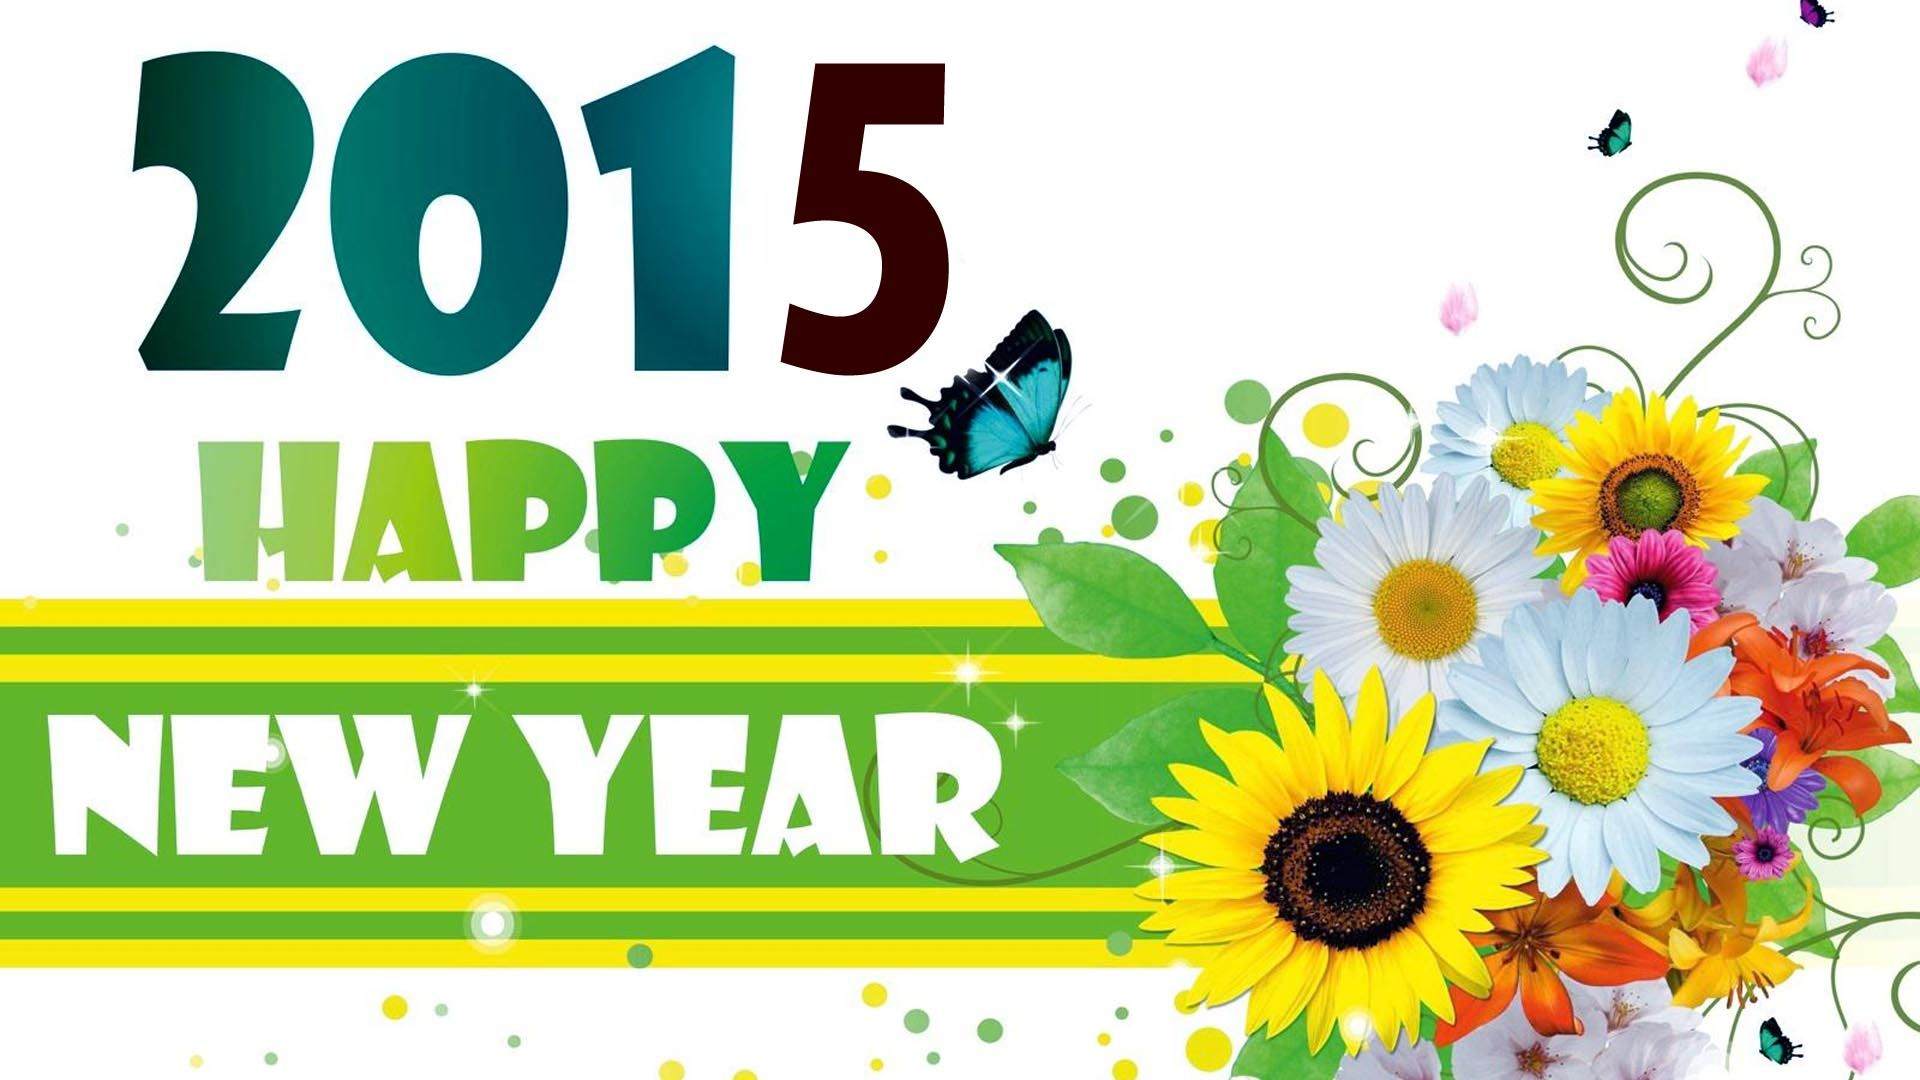 Wallpaper download new year 2015 - Best Hd Happy New Year 2015 Wallpapers For Your Desktop Pc